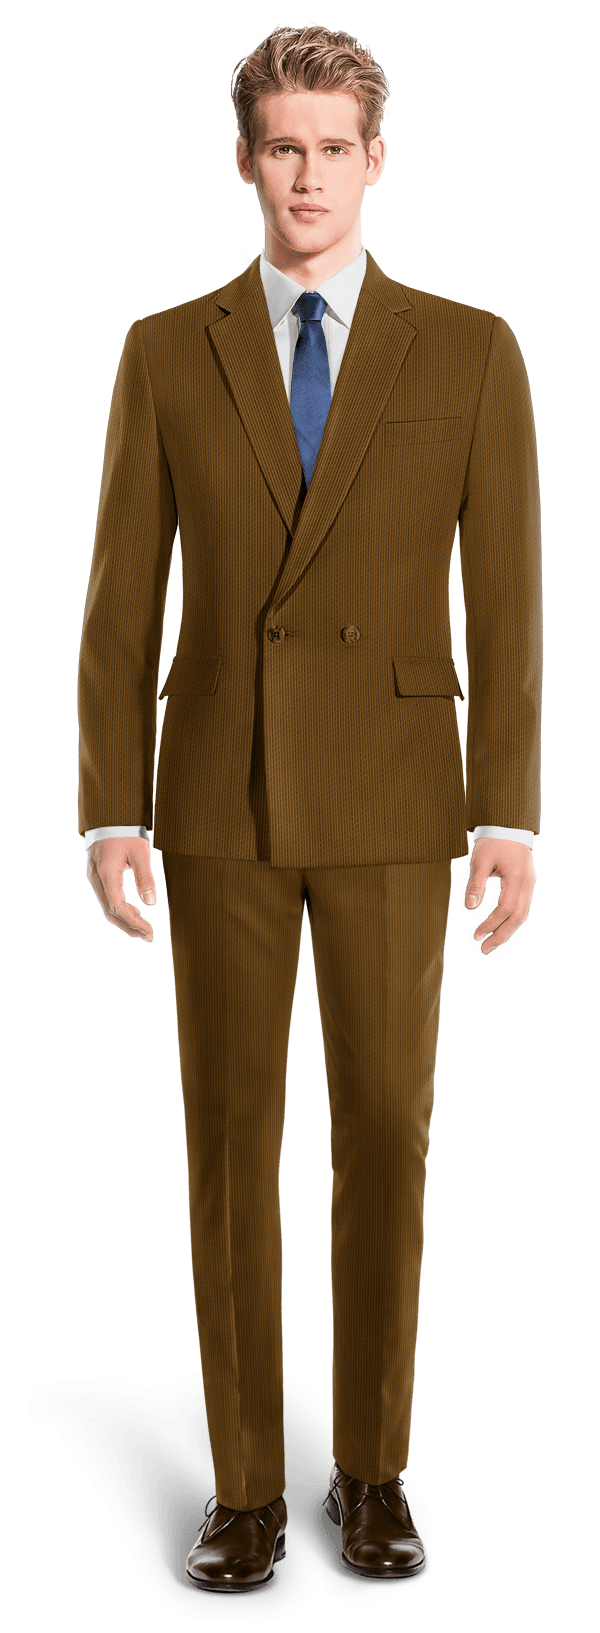 Summer Discount Jacket Cloth Suit Chino Cotton PNG Image